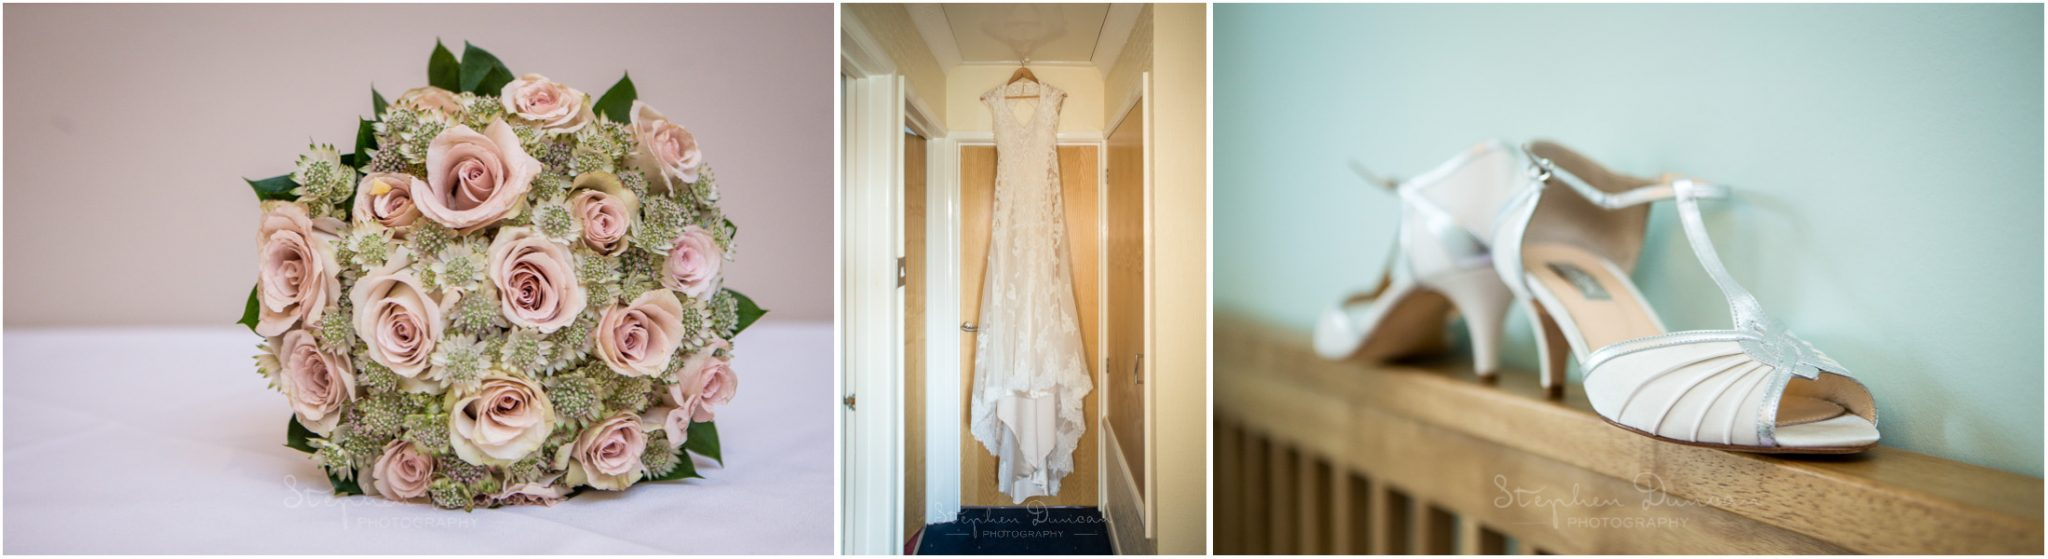 Romsey Abbey wedding photographer dress and shoe details